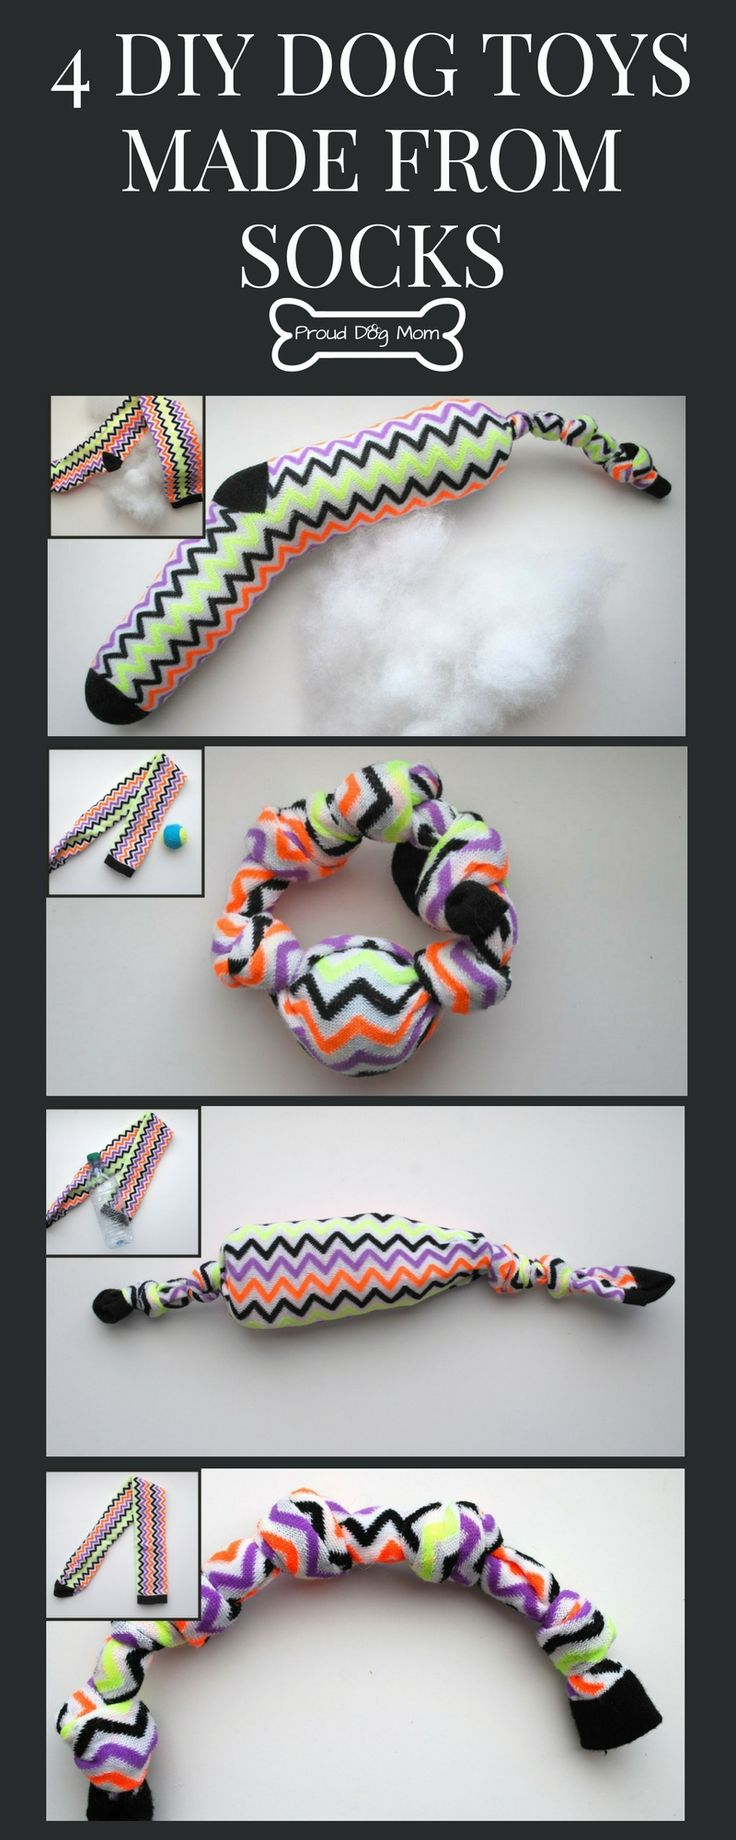 4 No-Sew DIY Dog Toys Made From Socks | No-Sew Dog Toys | Homemade Dog Toys | Dog Sock Toys |